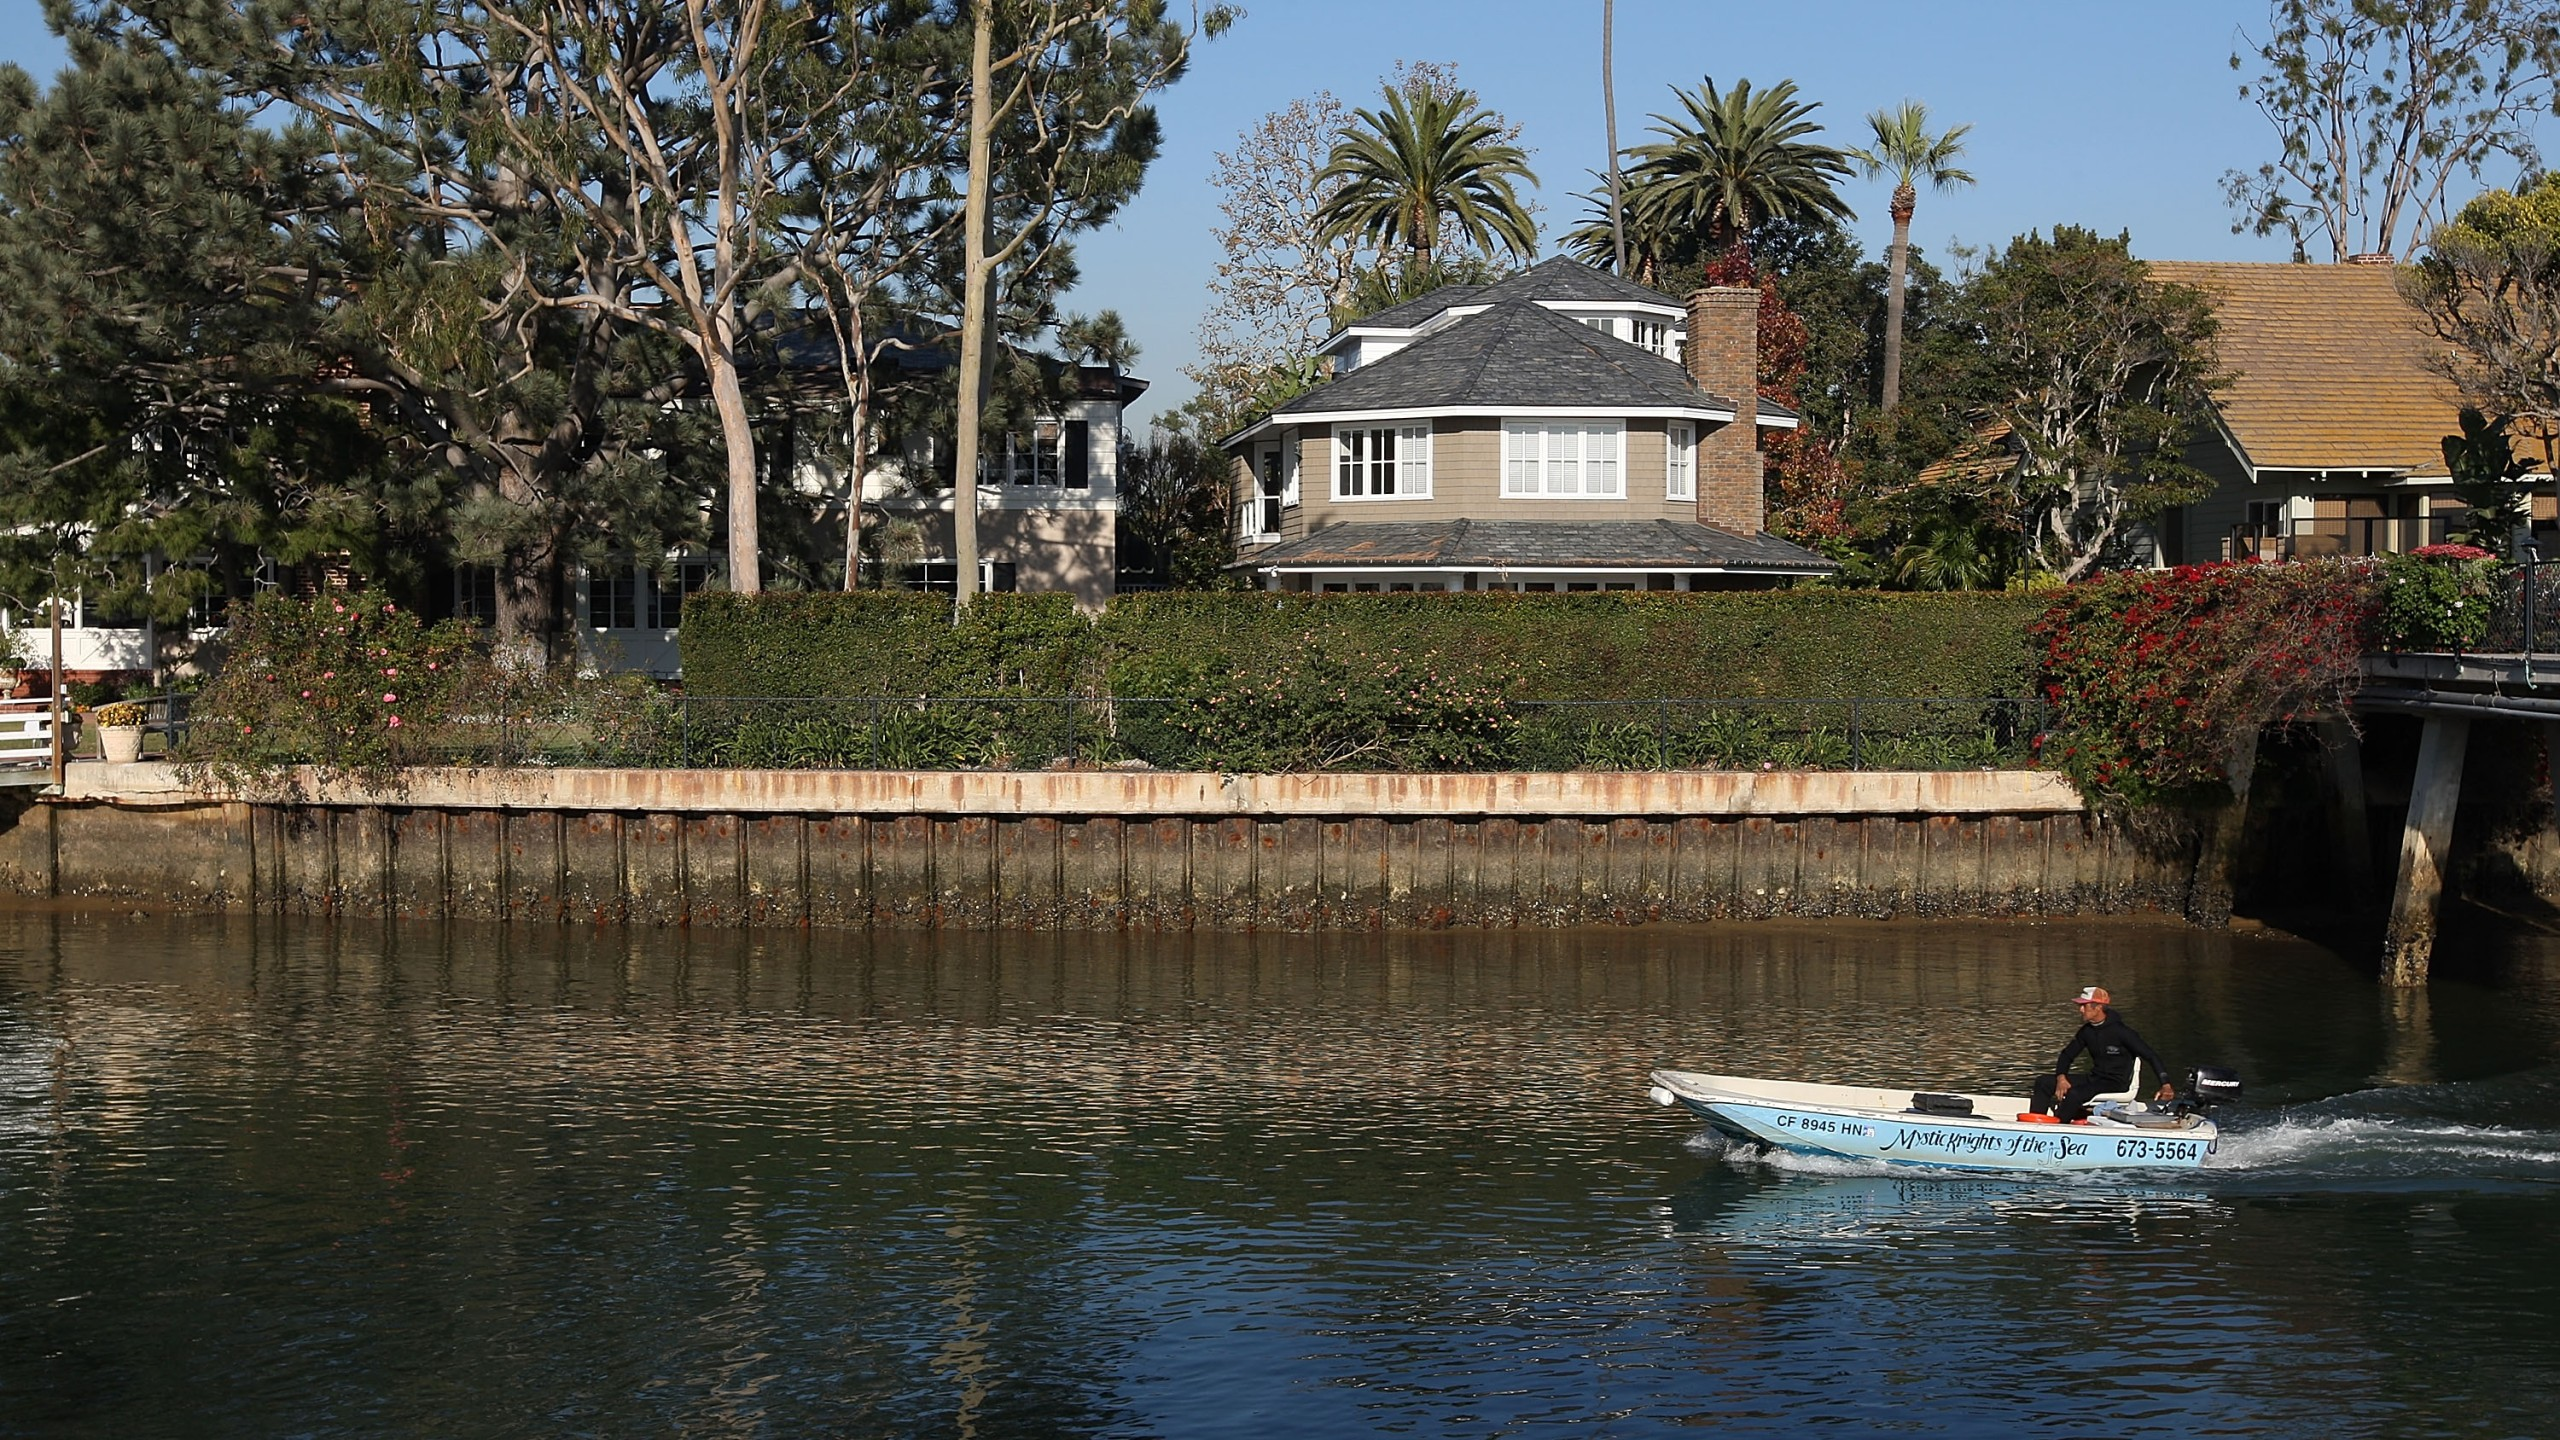 A boat passes marina in front homes on Dec.4, 2009 on Balboa Island in Newport Beach. (Credit: David McNew/Getty Images)